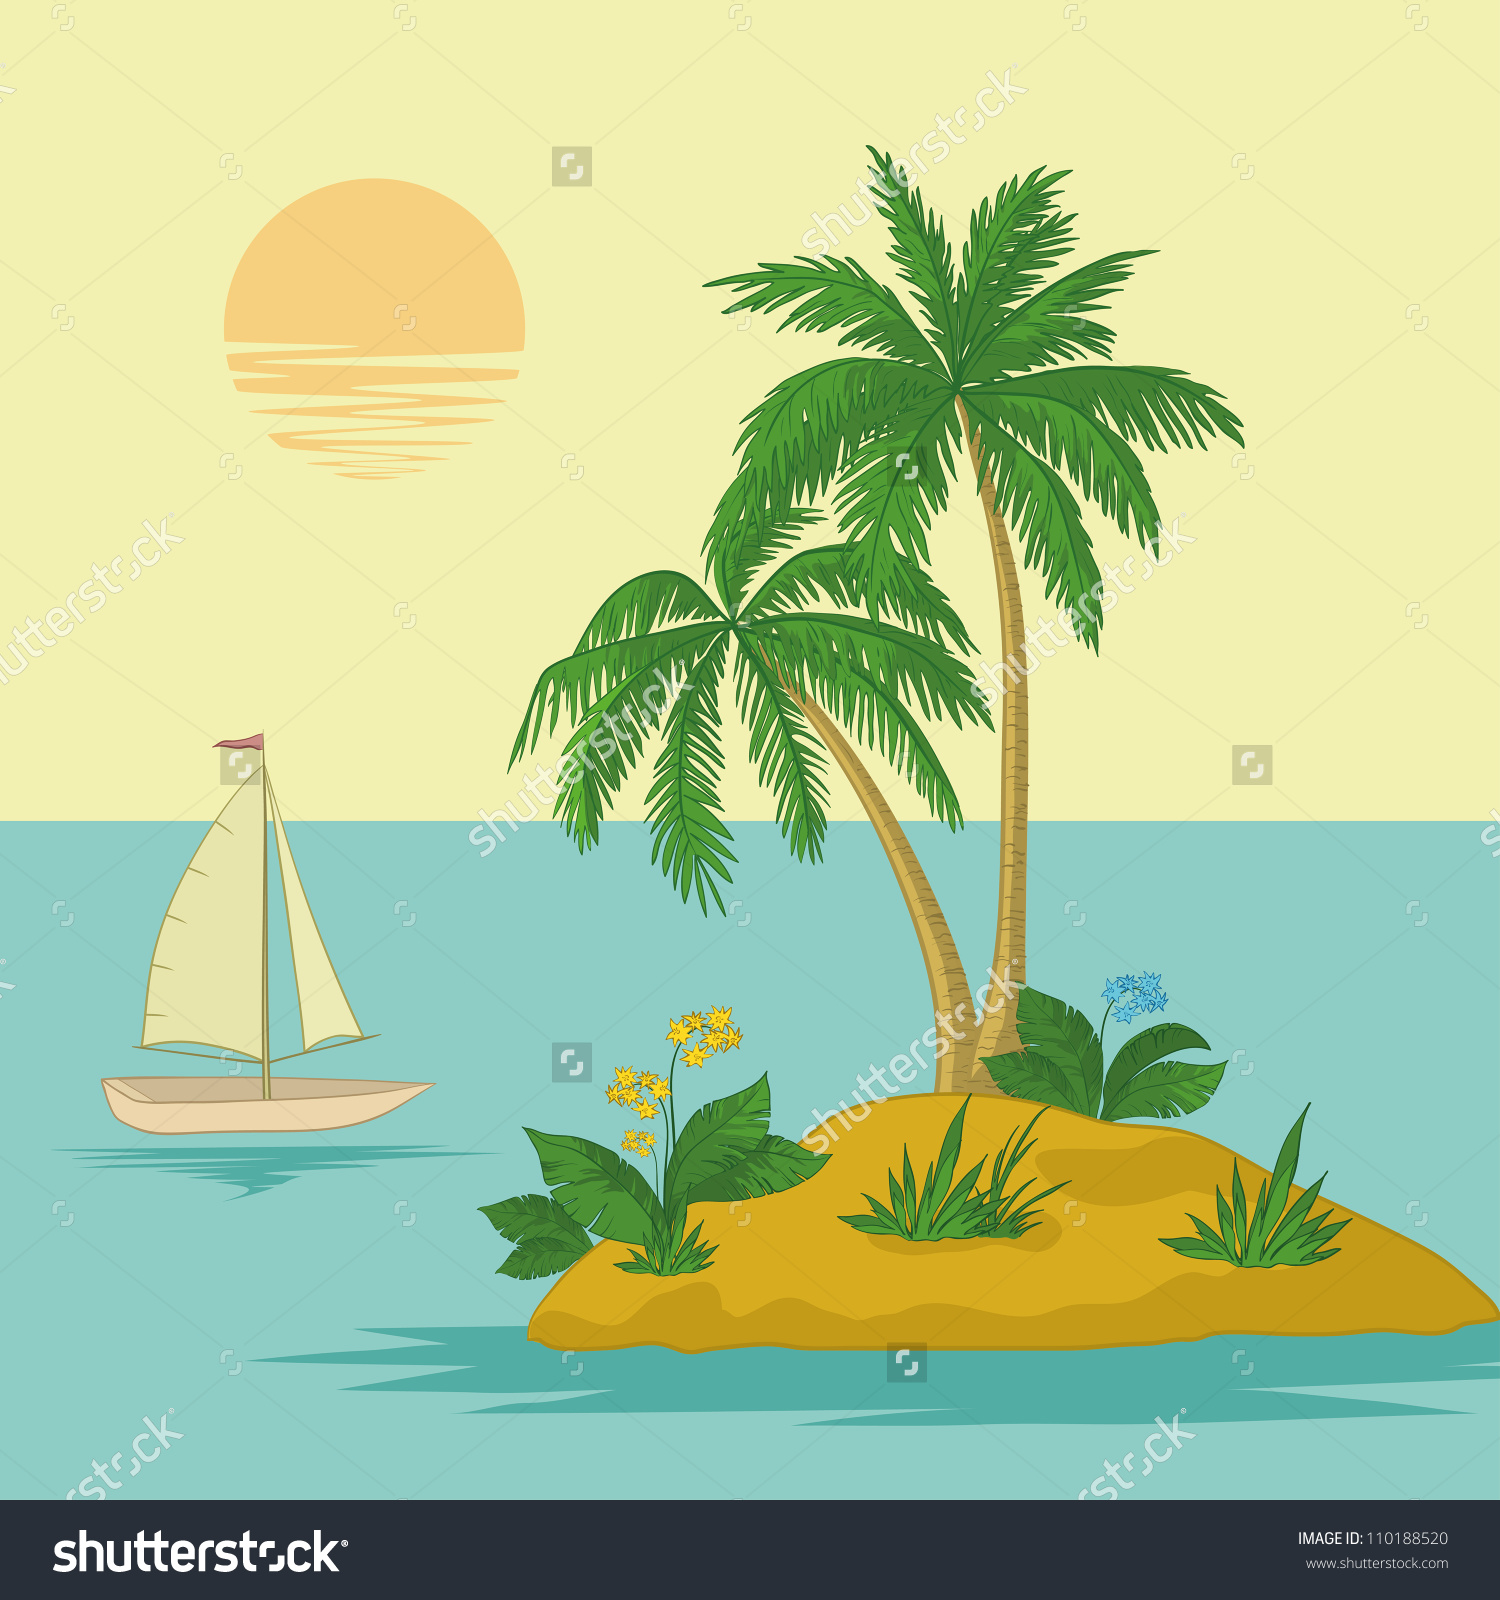 Ship Sun Tropical Sea Island Palm Stock Vector 110188520.